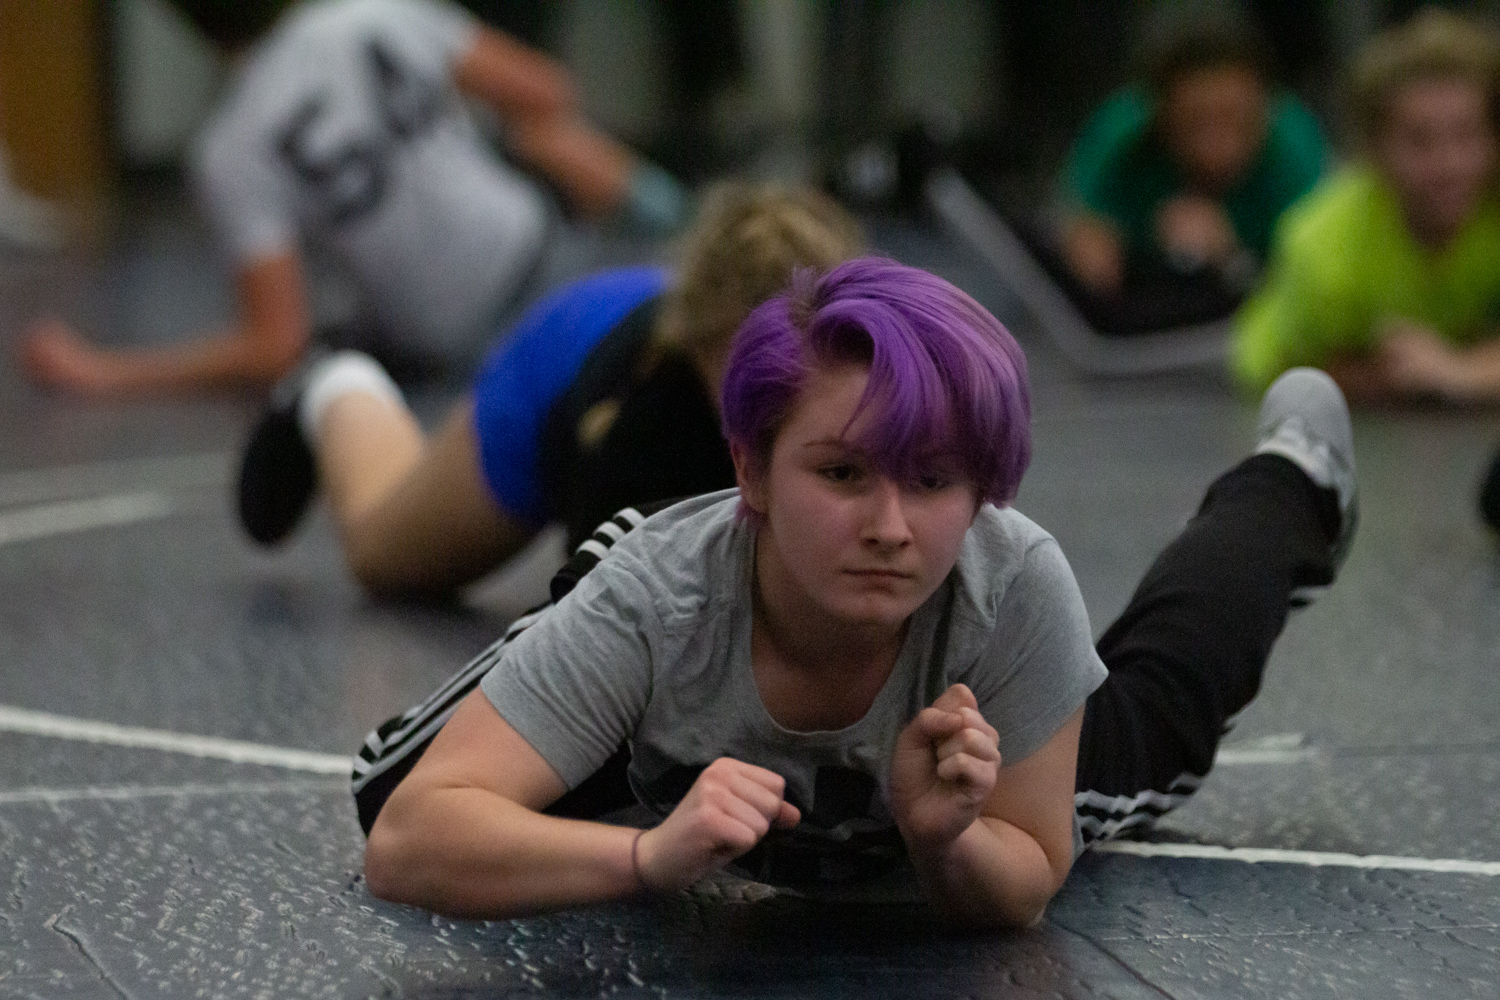 Female wrestlers practice as they prepare for their first match on Dec. 12